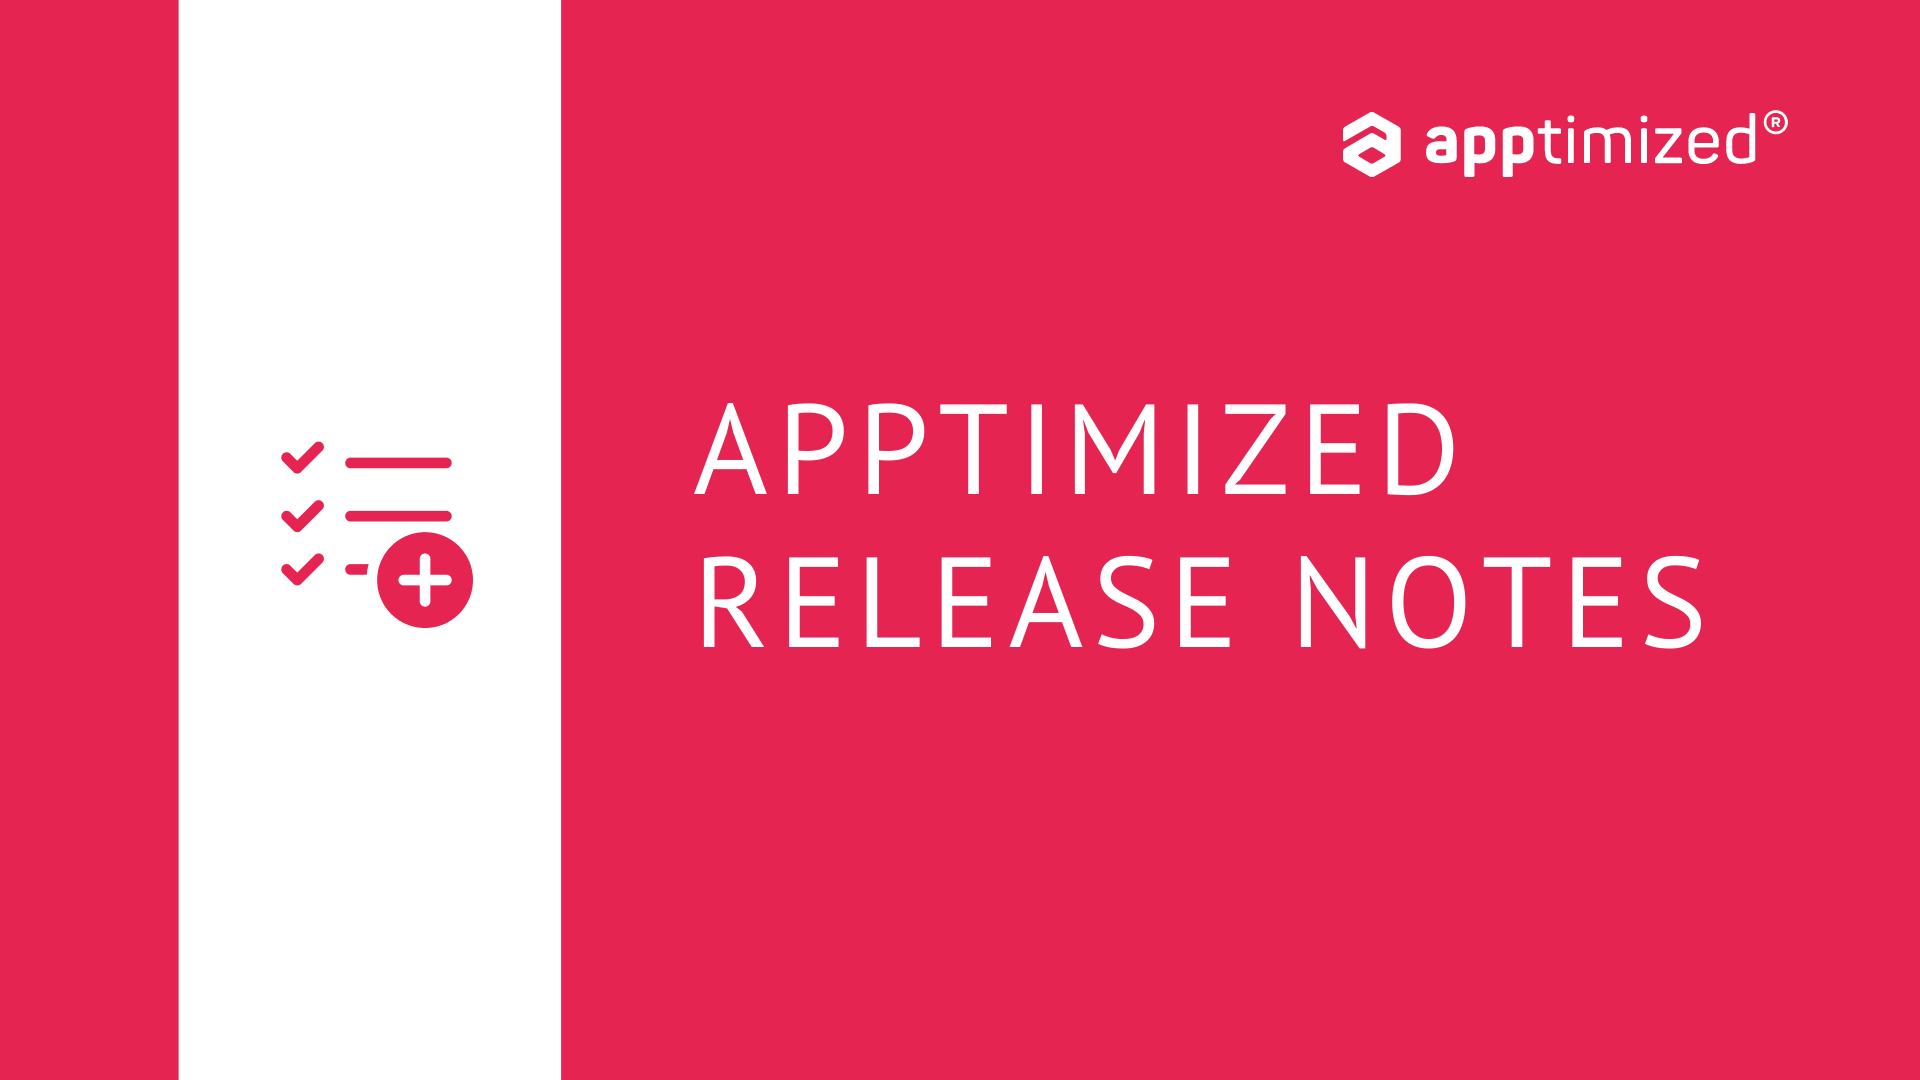 Apptimized release notes